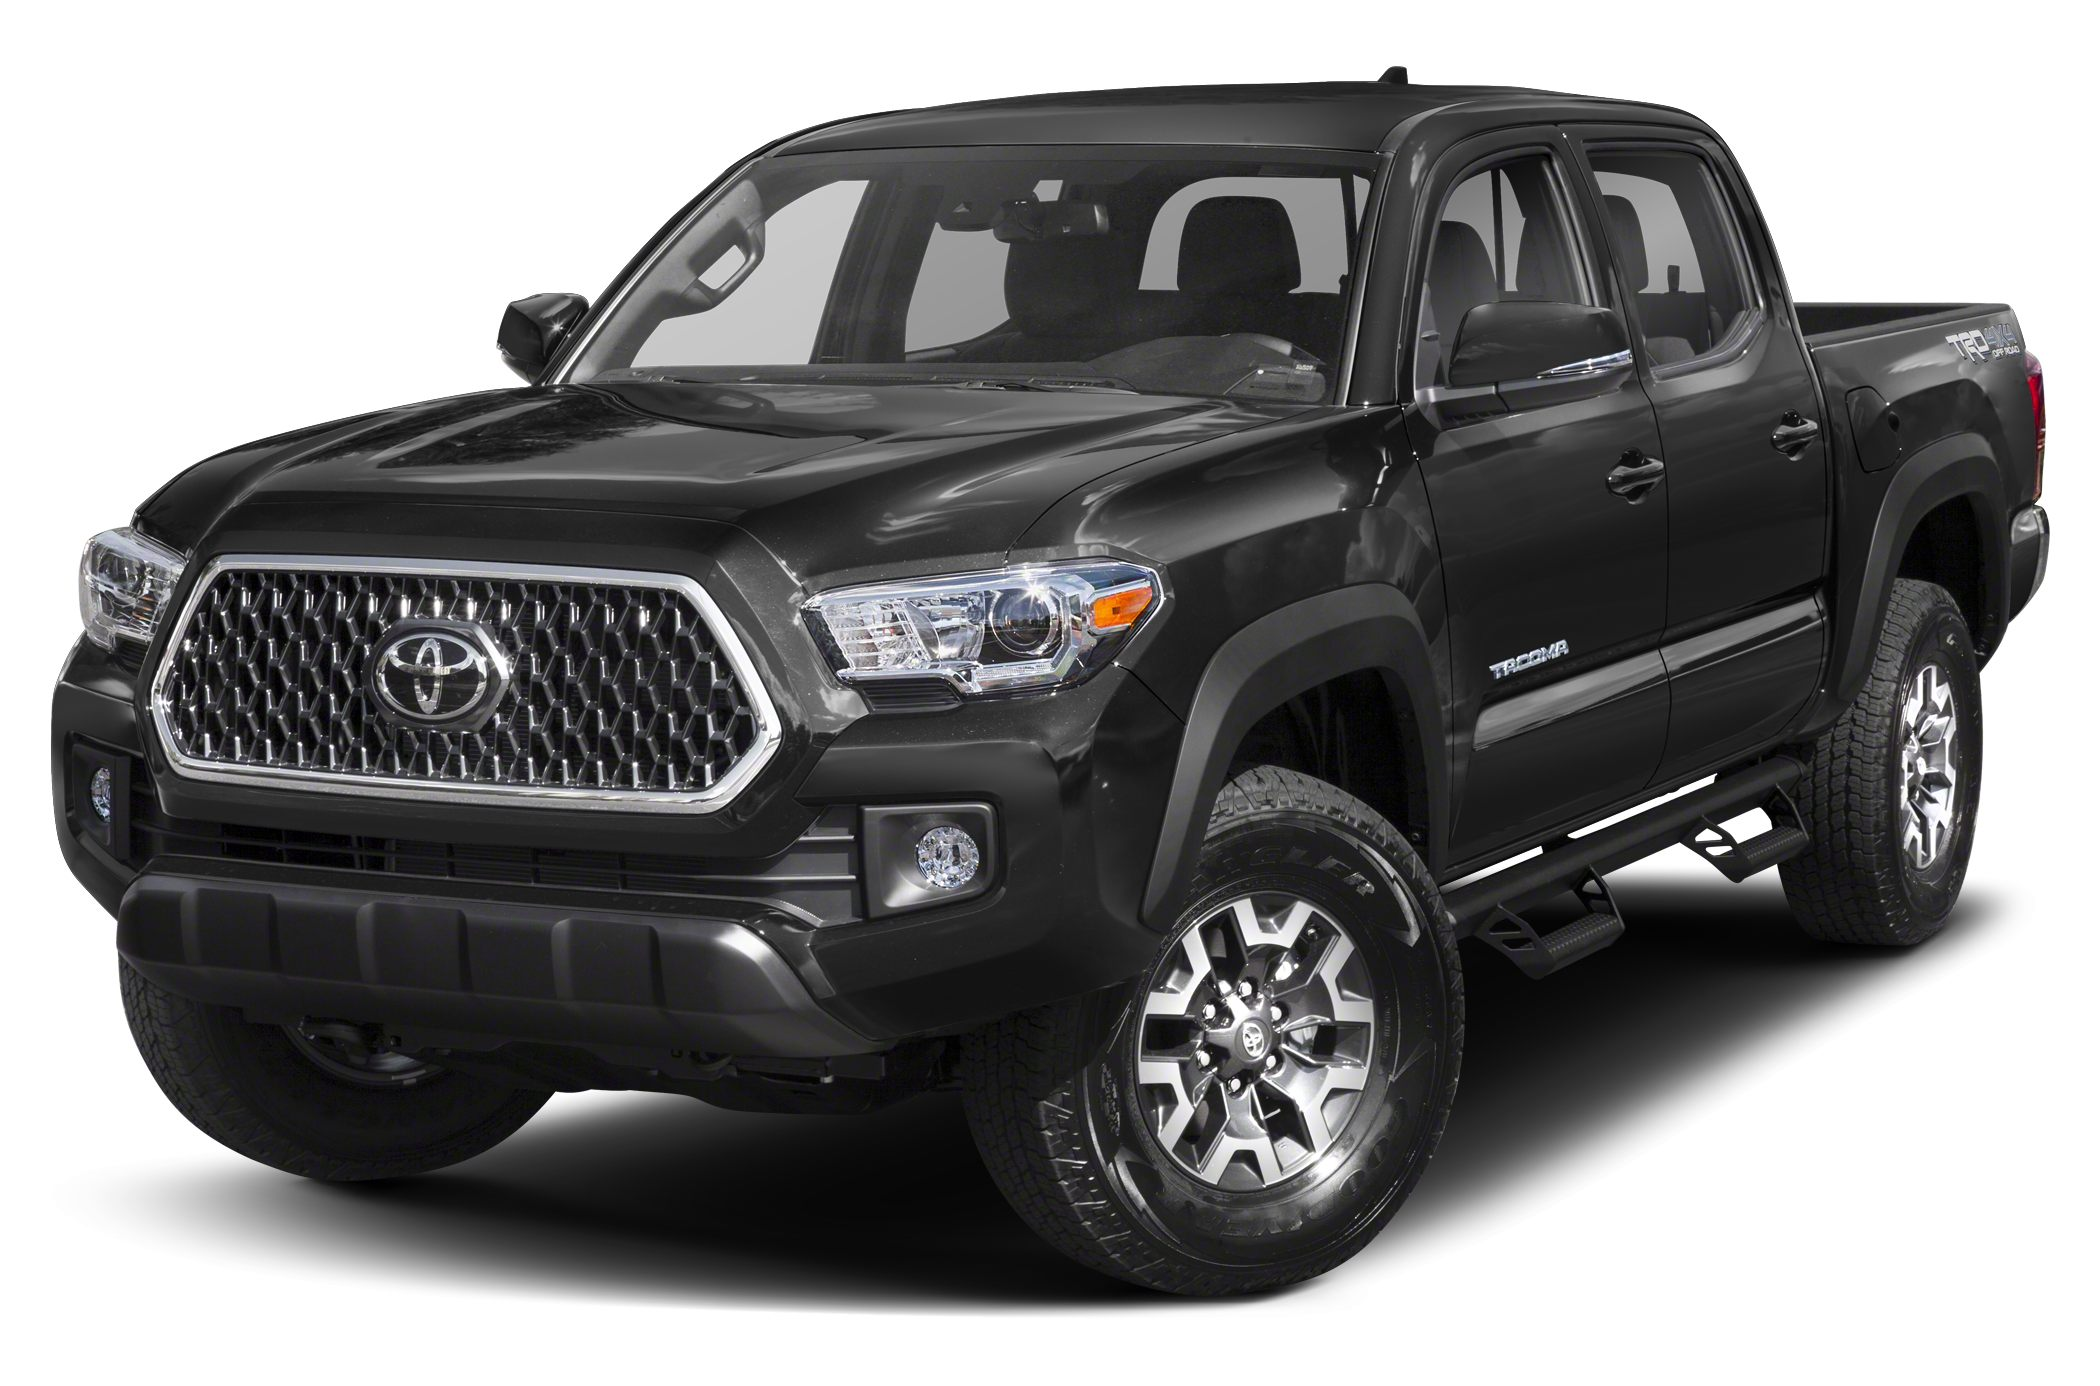 2019 Toyota Tacoma TRD Off Road V6 4x4 Double Cab 140.6 in. WB